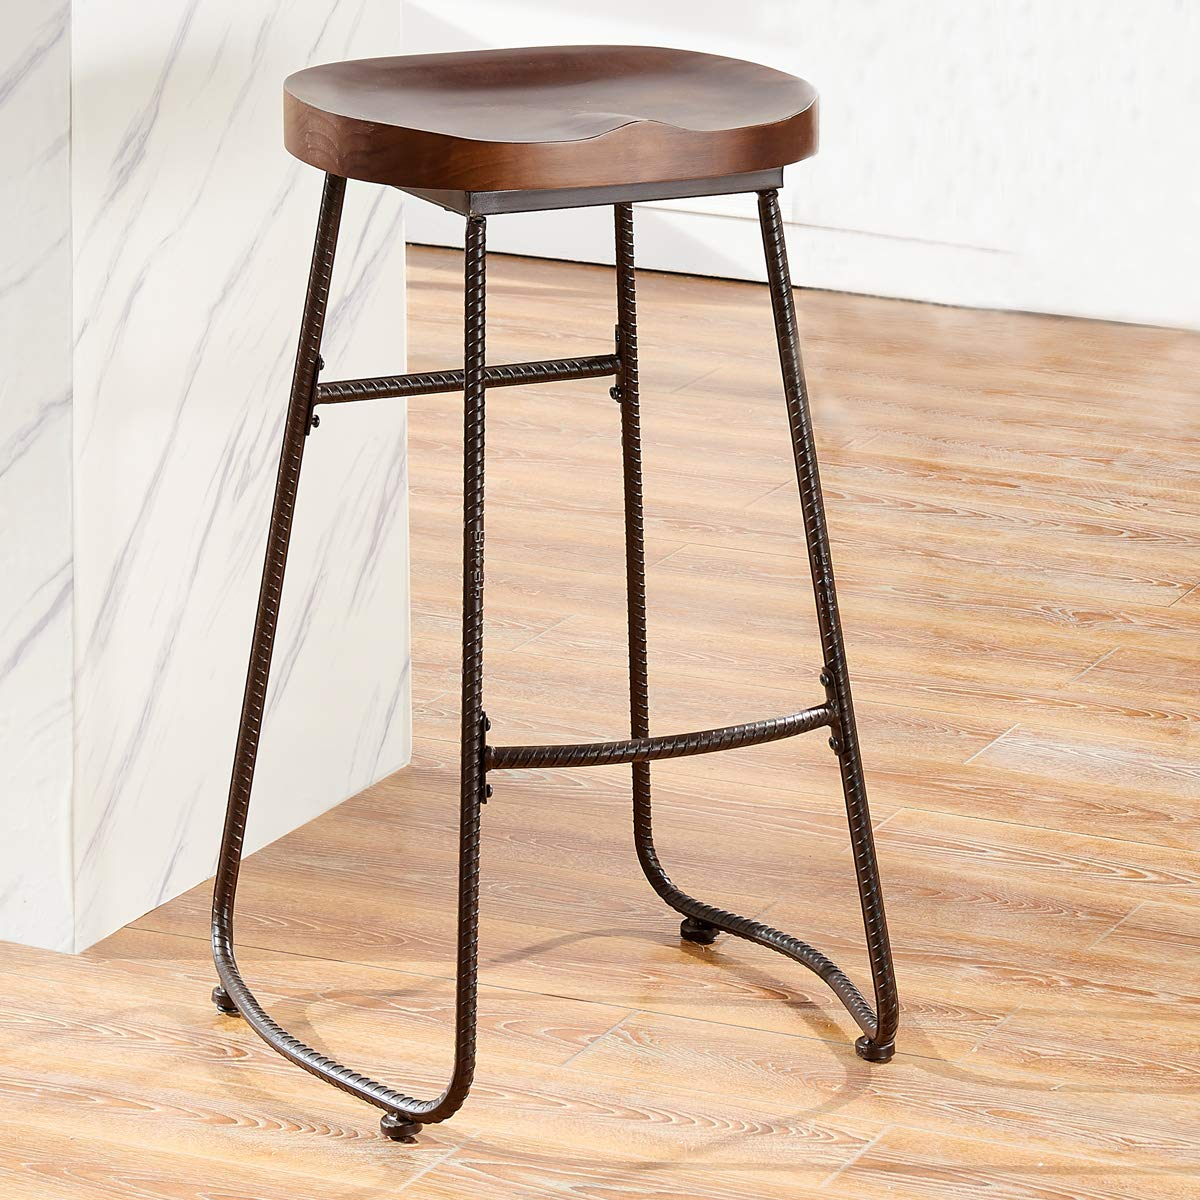 O&K FURNITURE 30-Inch Retro Bar Stool Kitchen Chair, Backless Counter Stool  with Saddle Seat, Rustic Brown (1-PC)